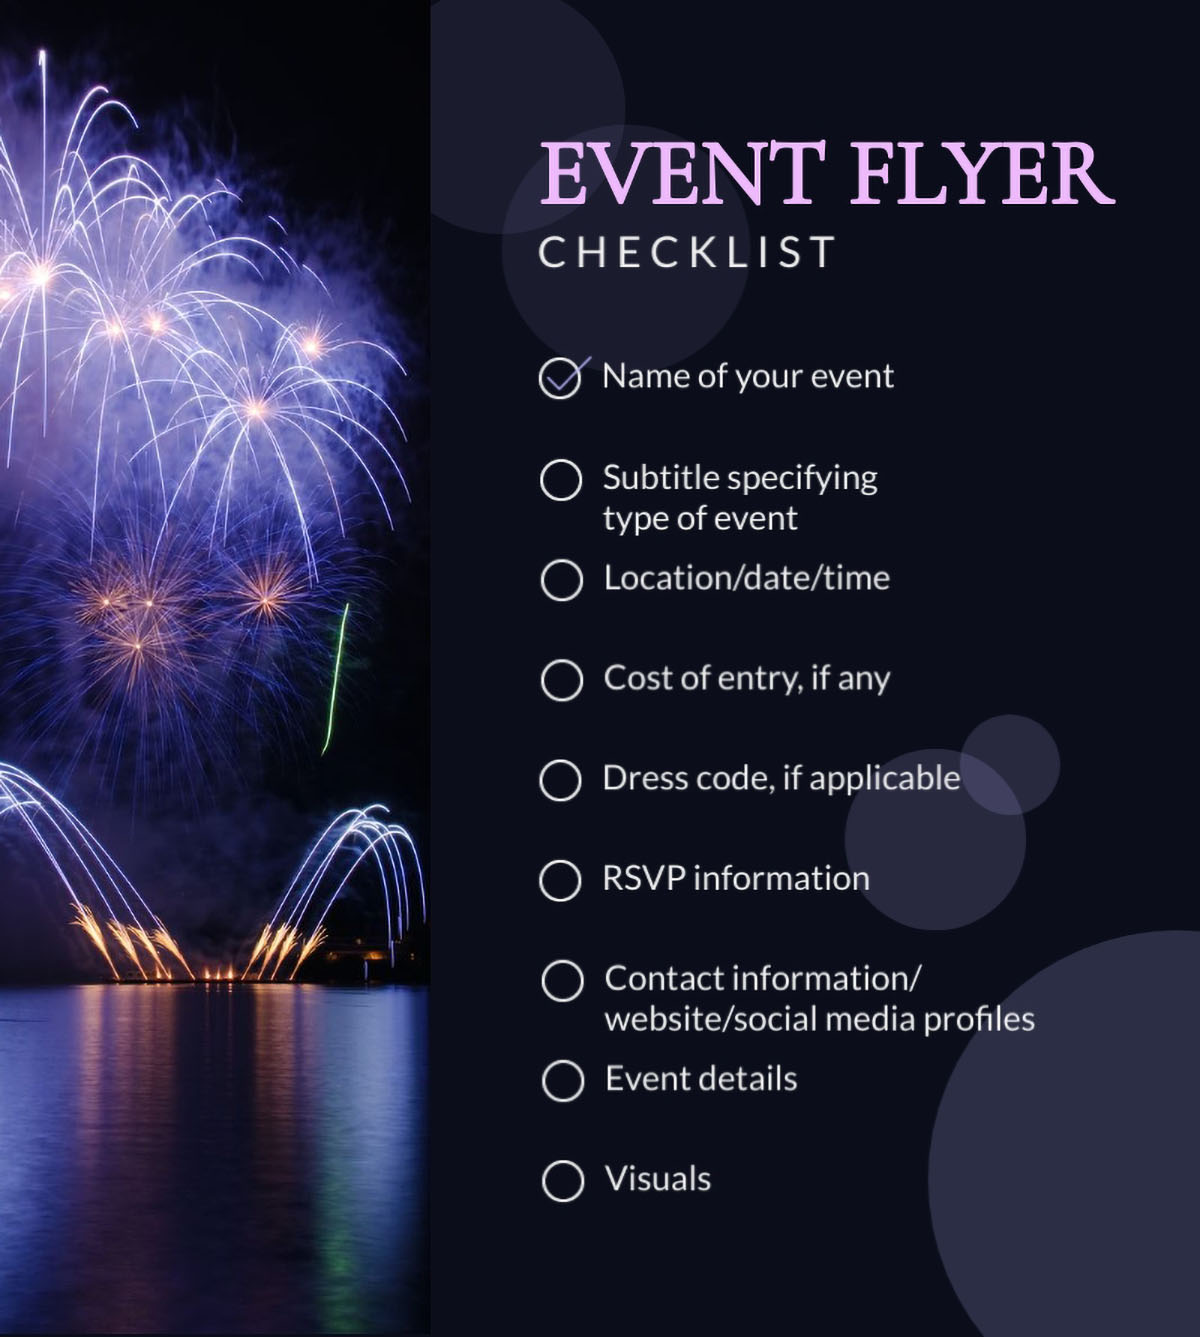 flyer design - event flyer checklist